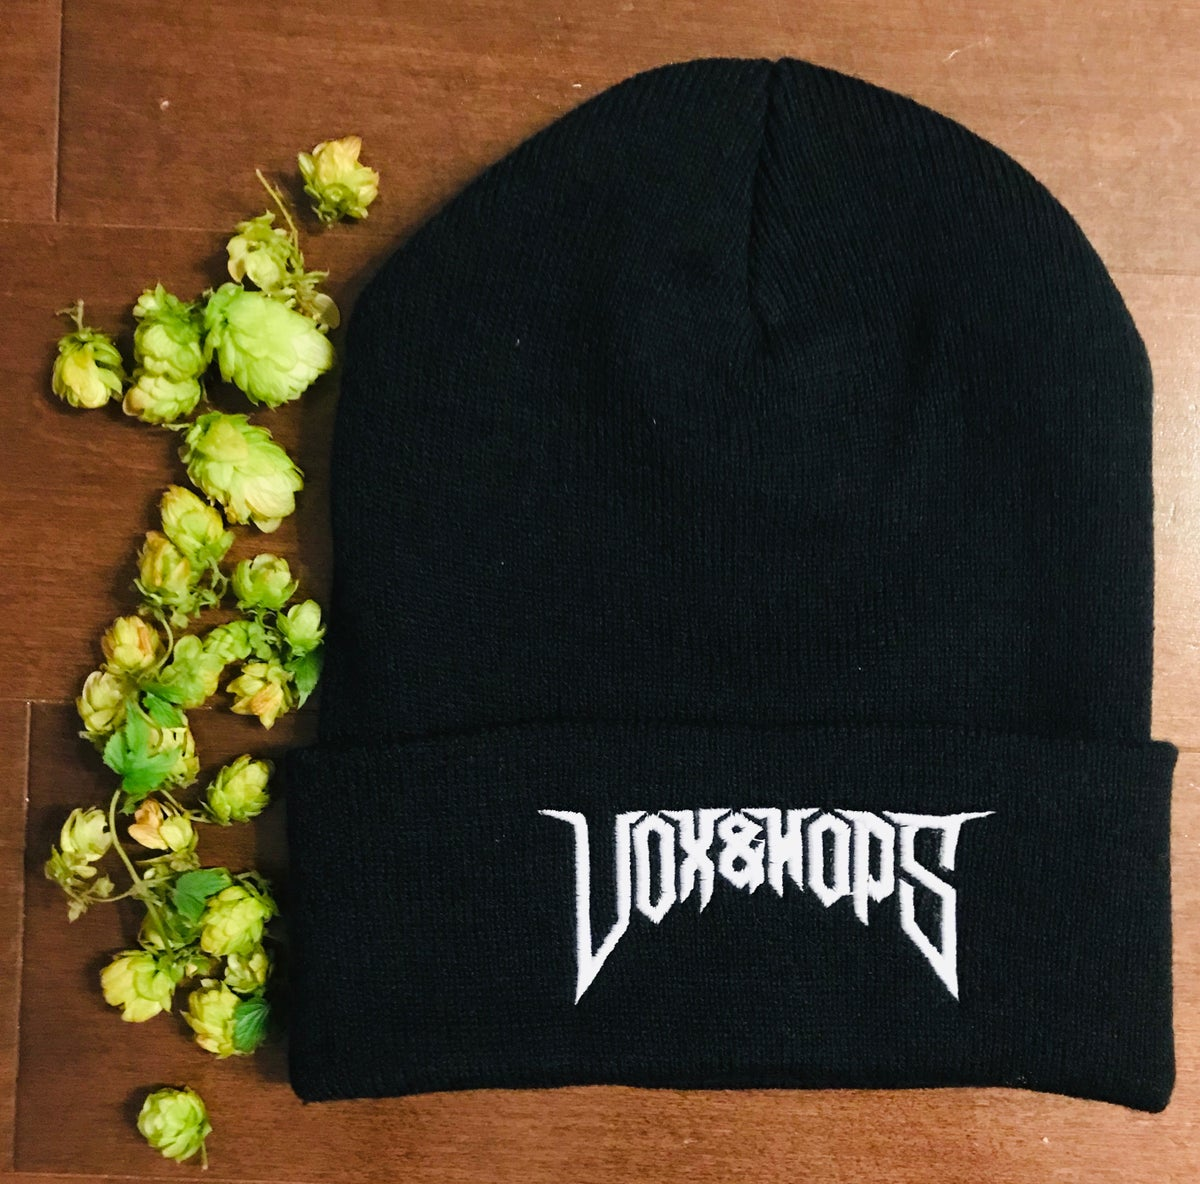 Image of Vox&Hops Cuffed Knit Beanie